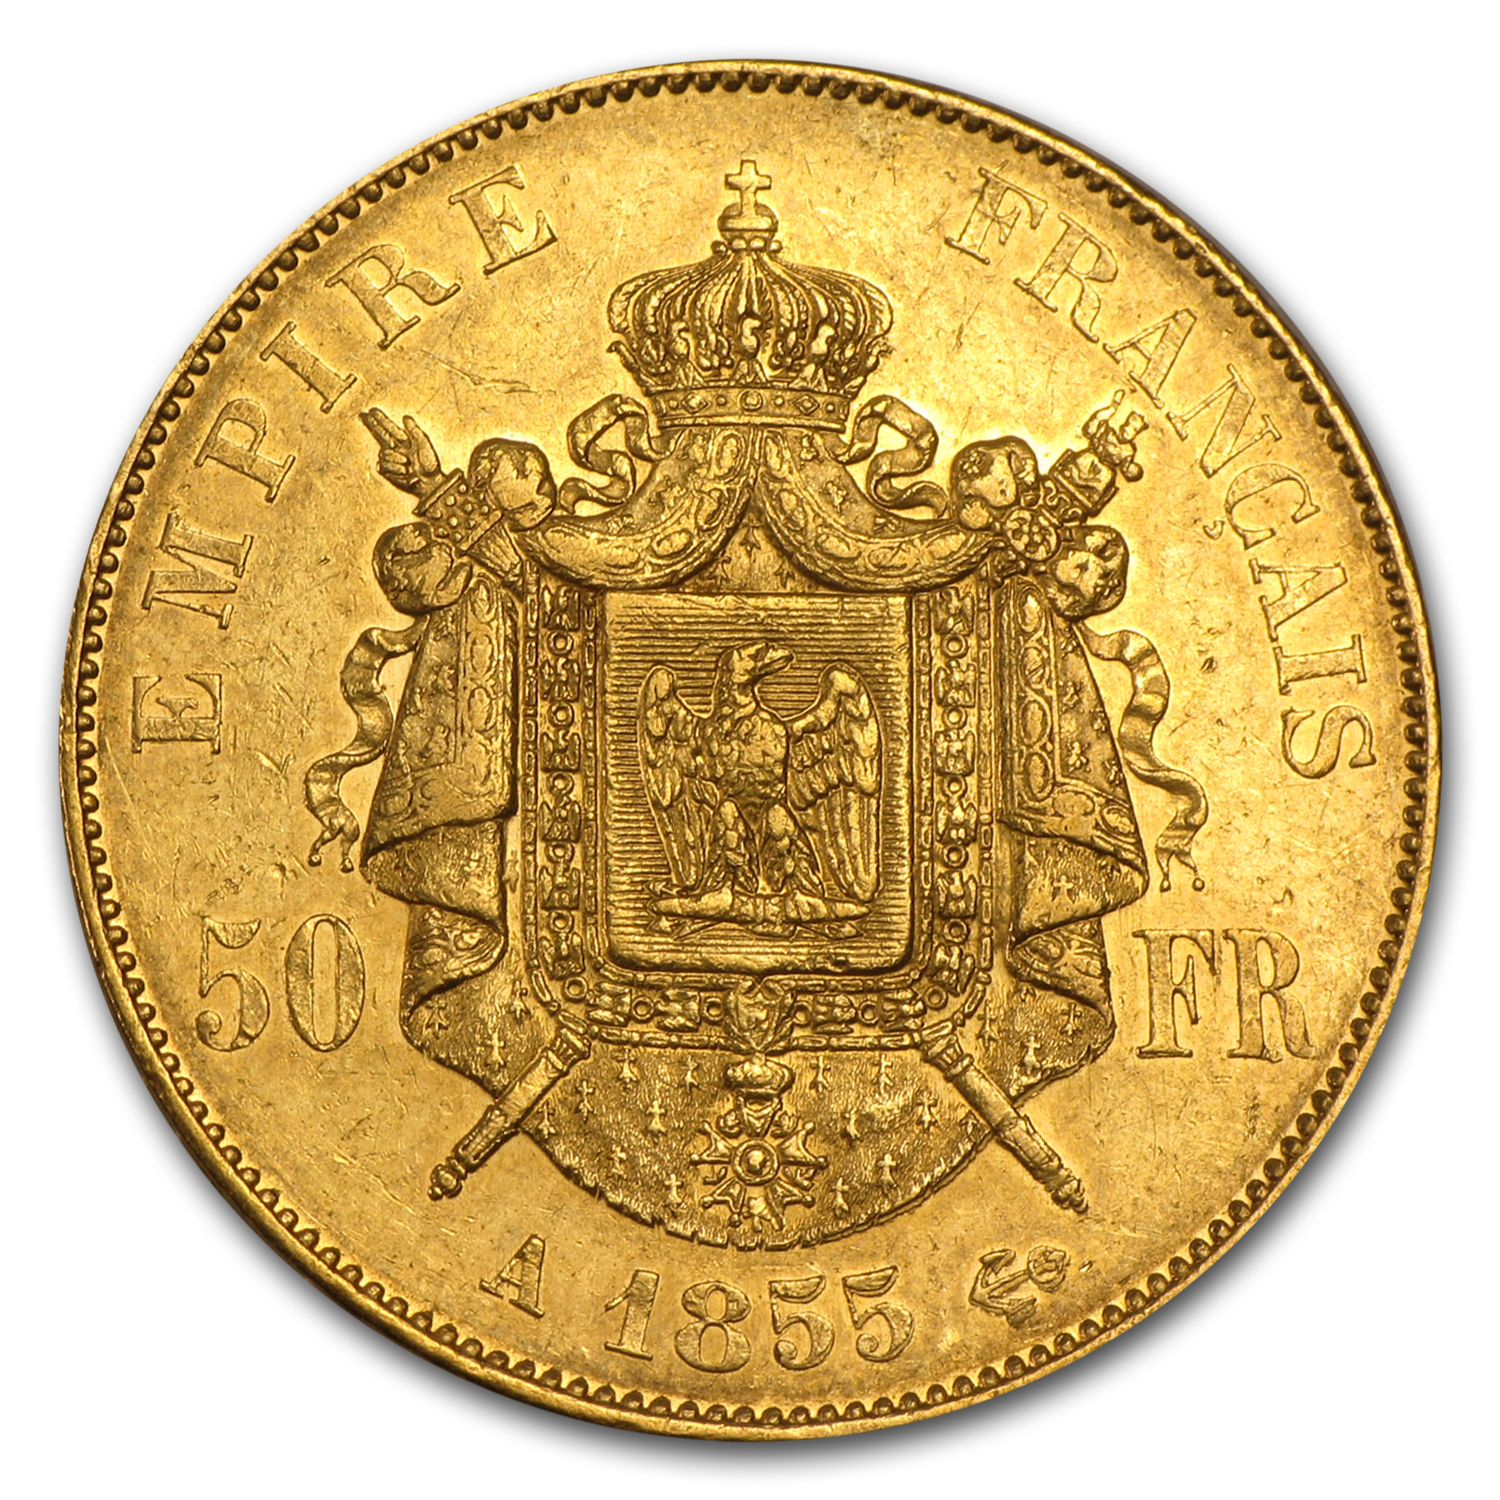 1855-1859 France Gold 50 Francs Napoleon III Avg Circ